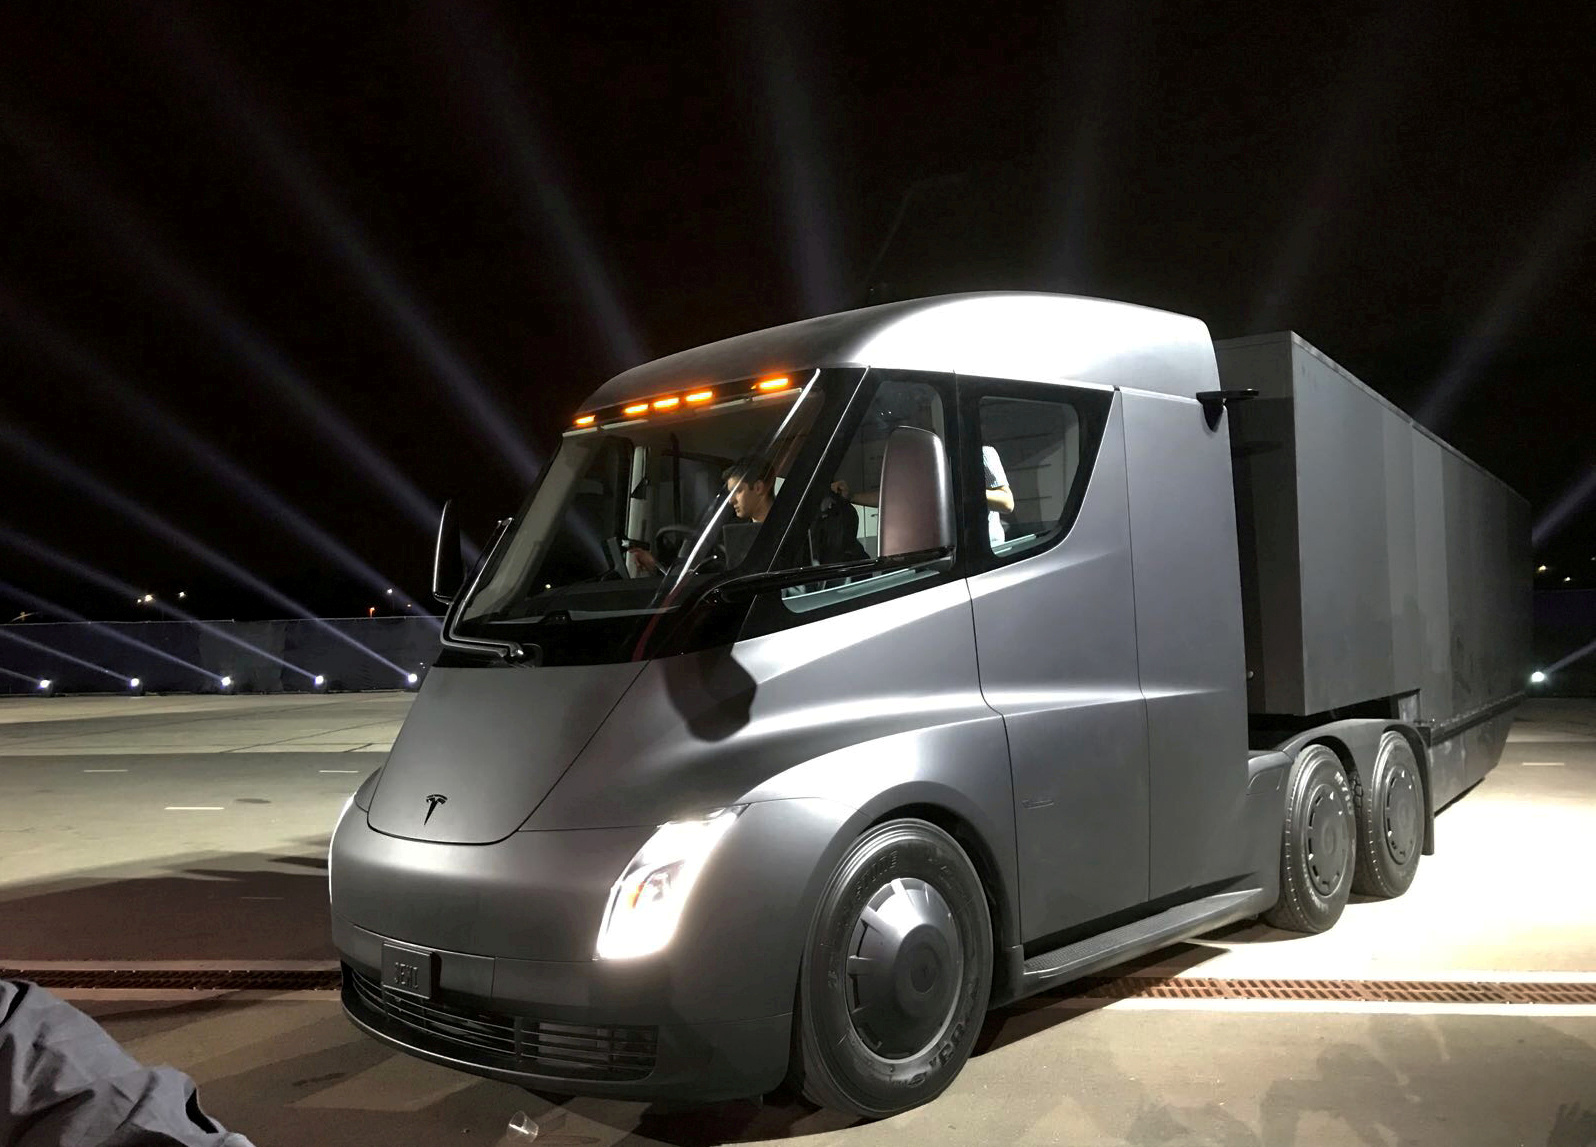 Tesla's new electric truck is unveiled during a presentation in Hawthorne, California, U.S., November 16, 2017. REUTERS/Alexandria Sage/File Photo